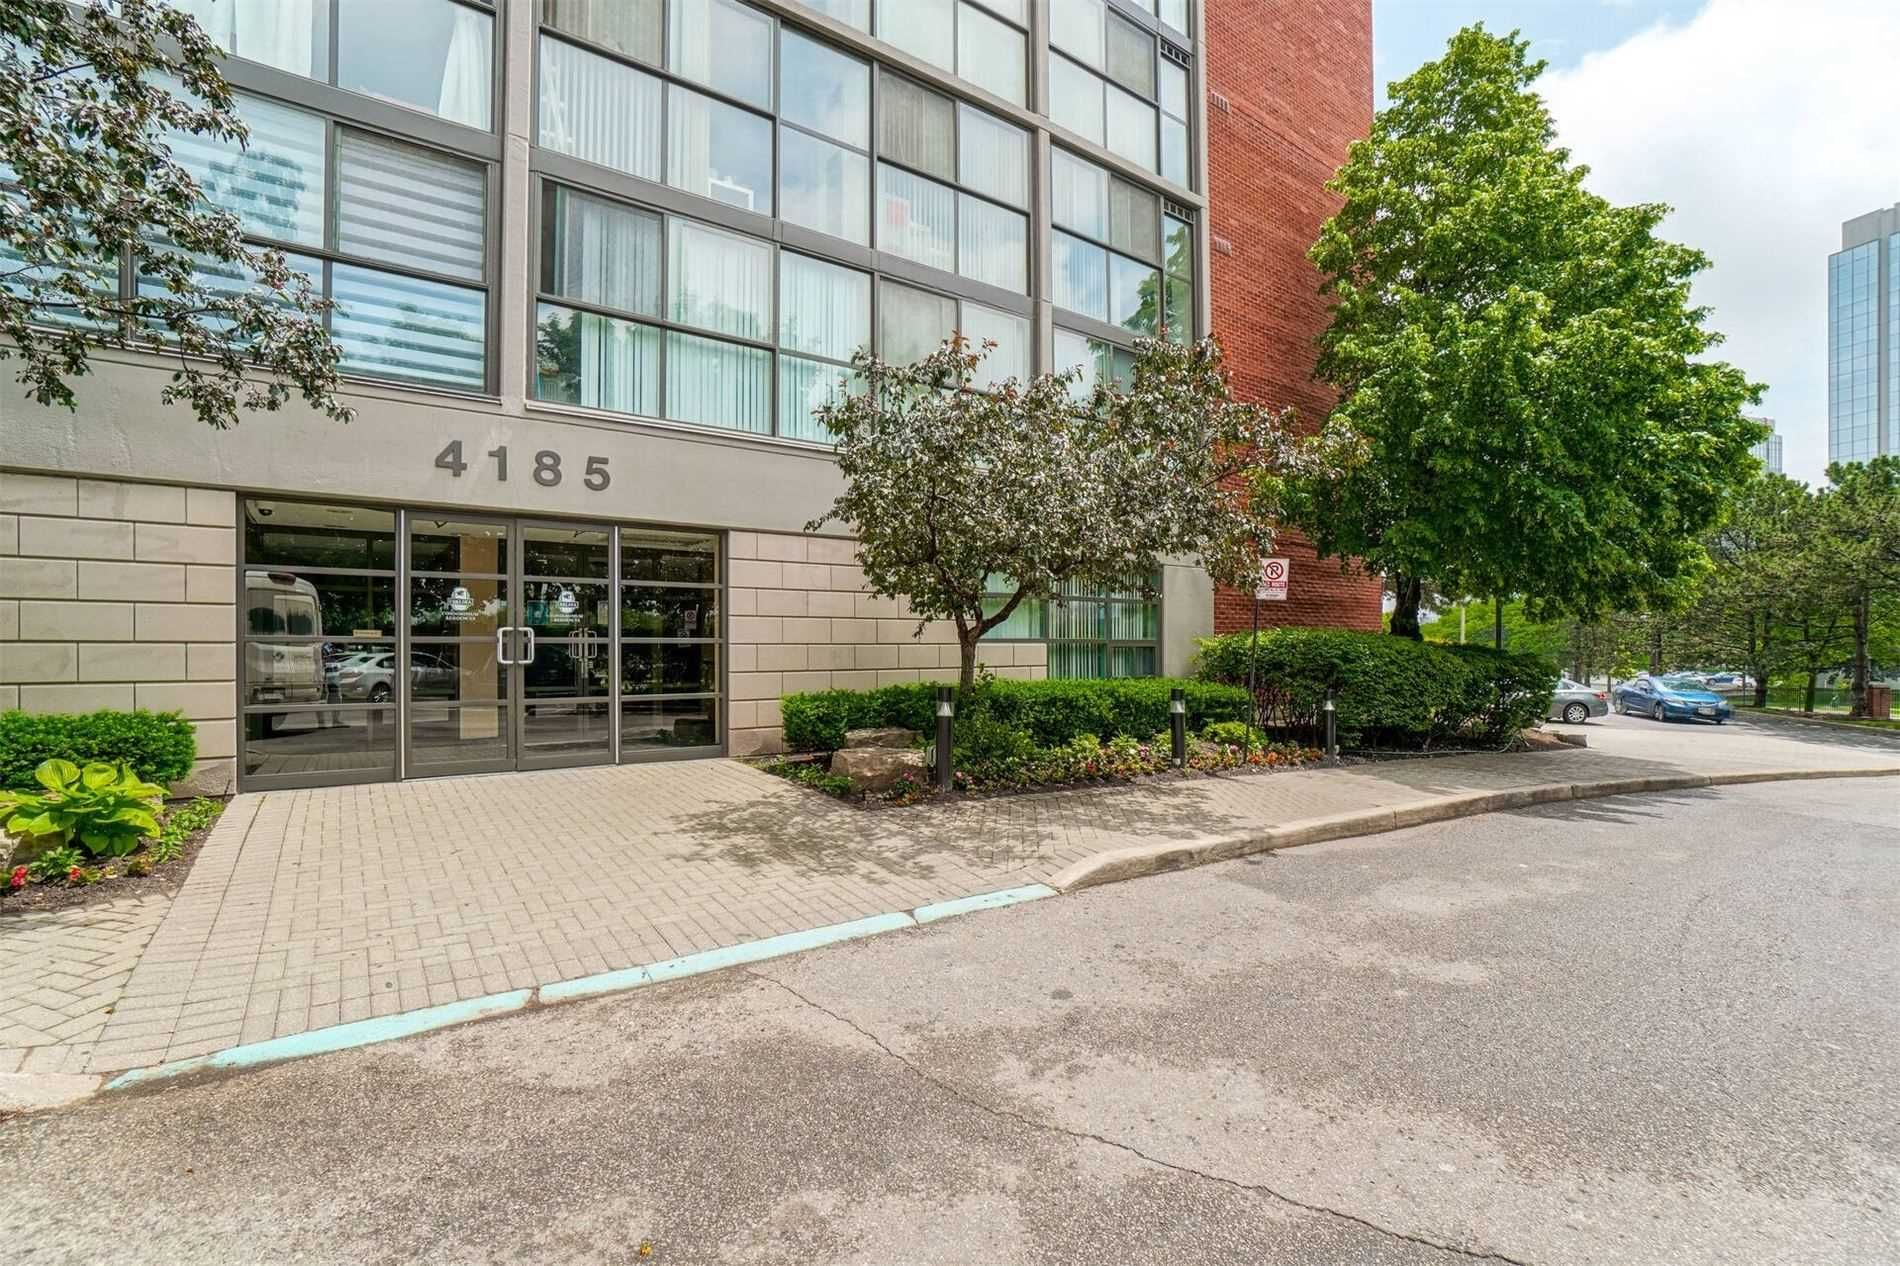 4185 Shipp Dr, unit 1111 for sale in Toronto - image #2